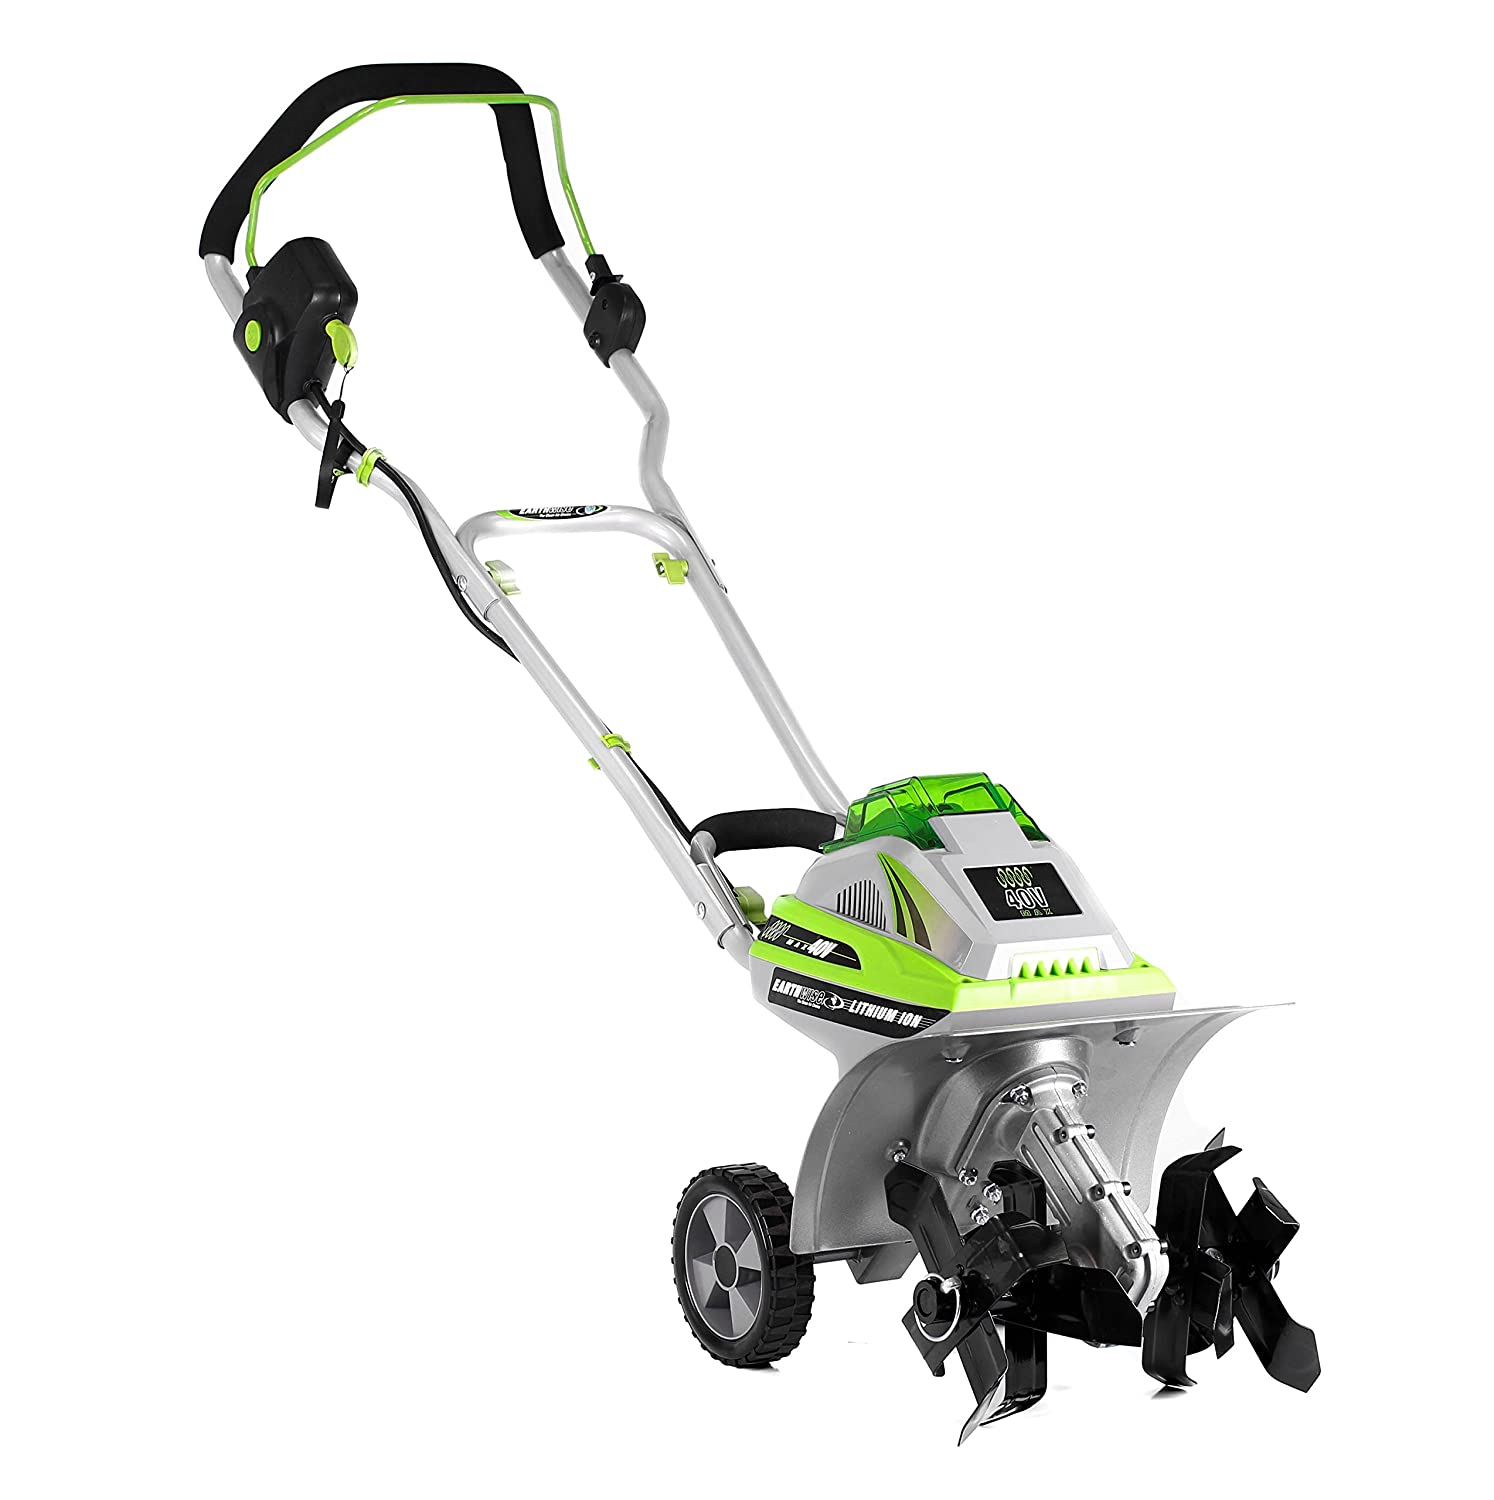 Earthwise TC70040 11-Inch 40-Volt Lithium Ion Cordless Electric Tiller/Cultivator, 4Ah Battery & Charger Included